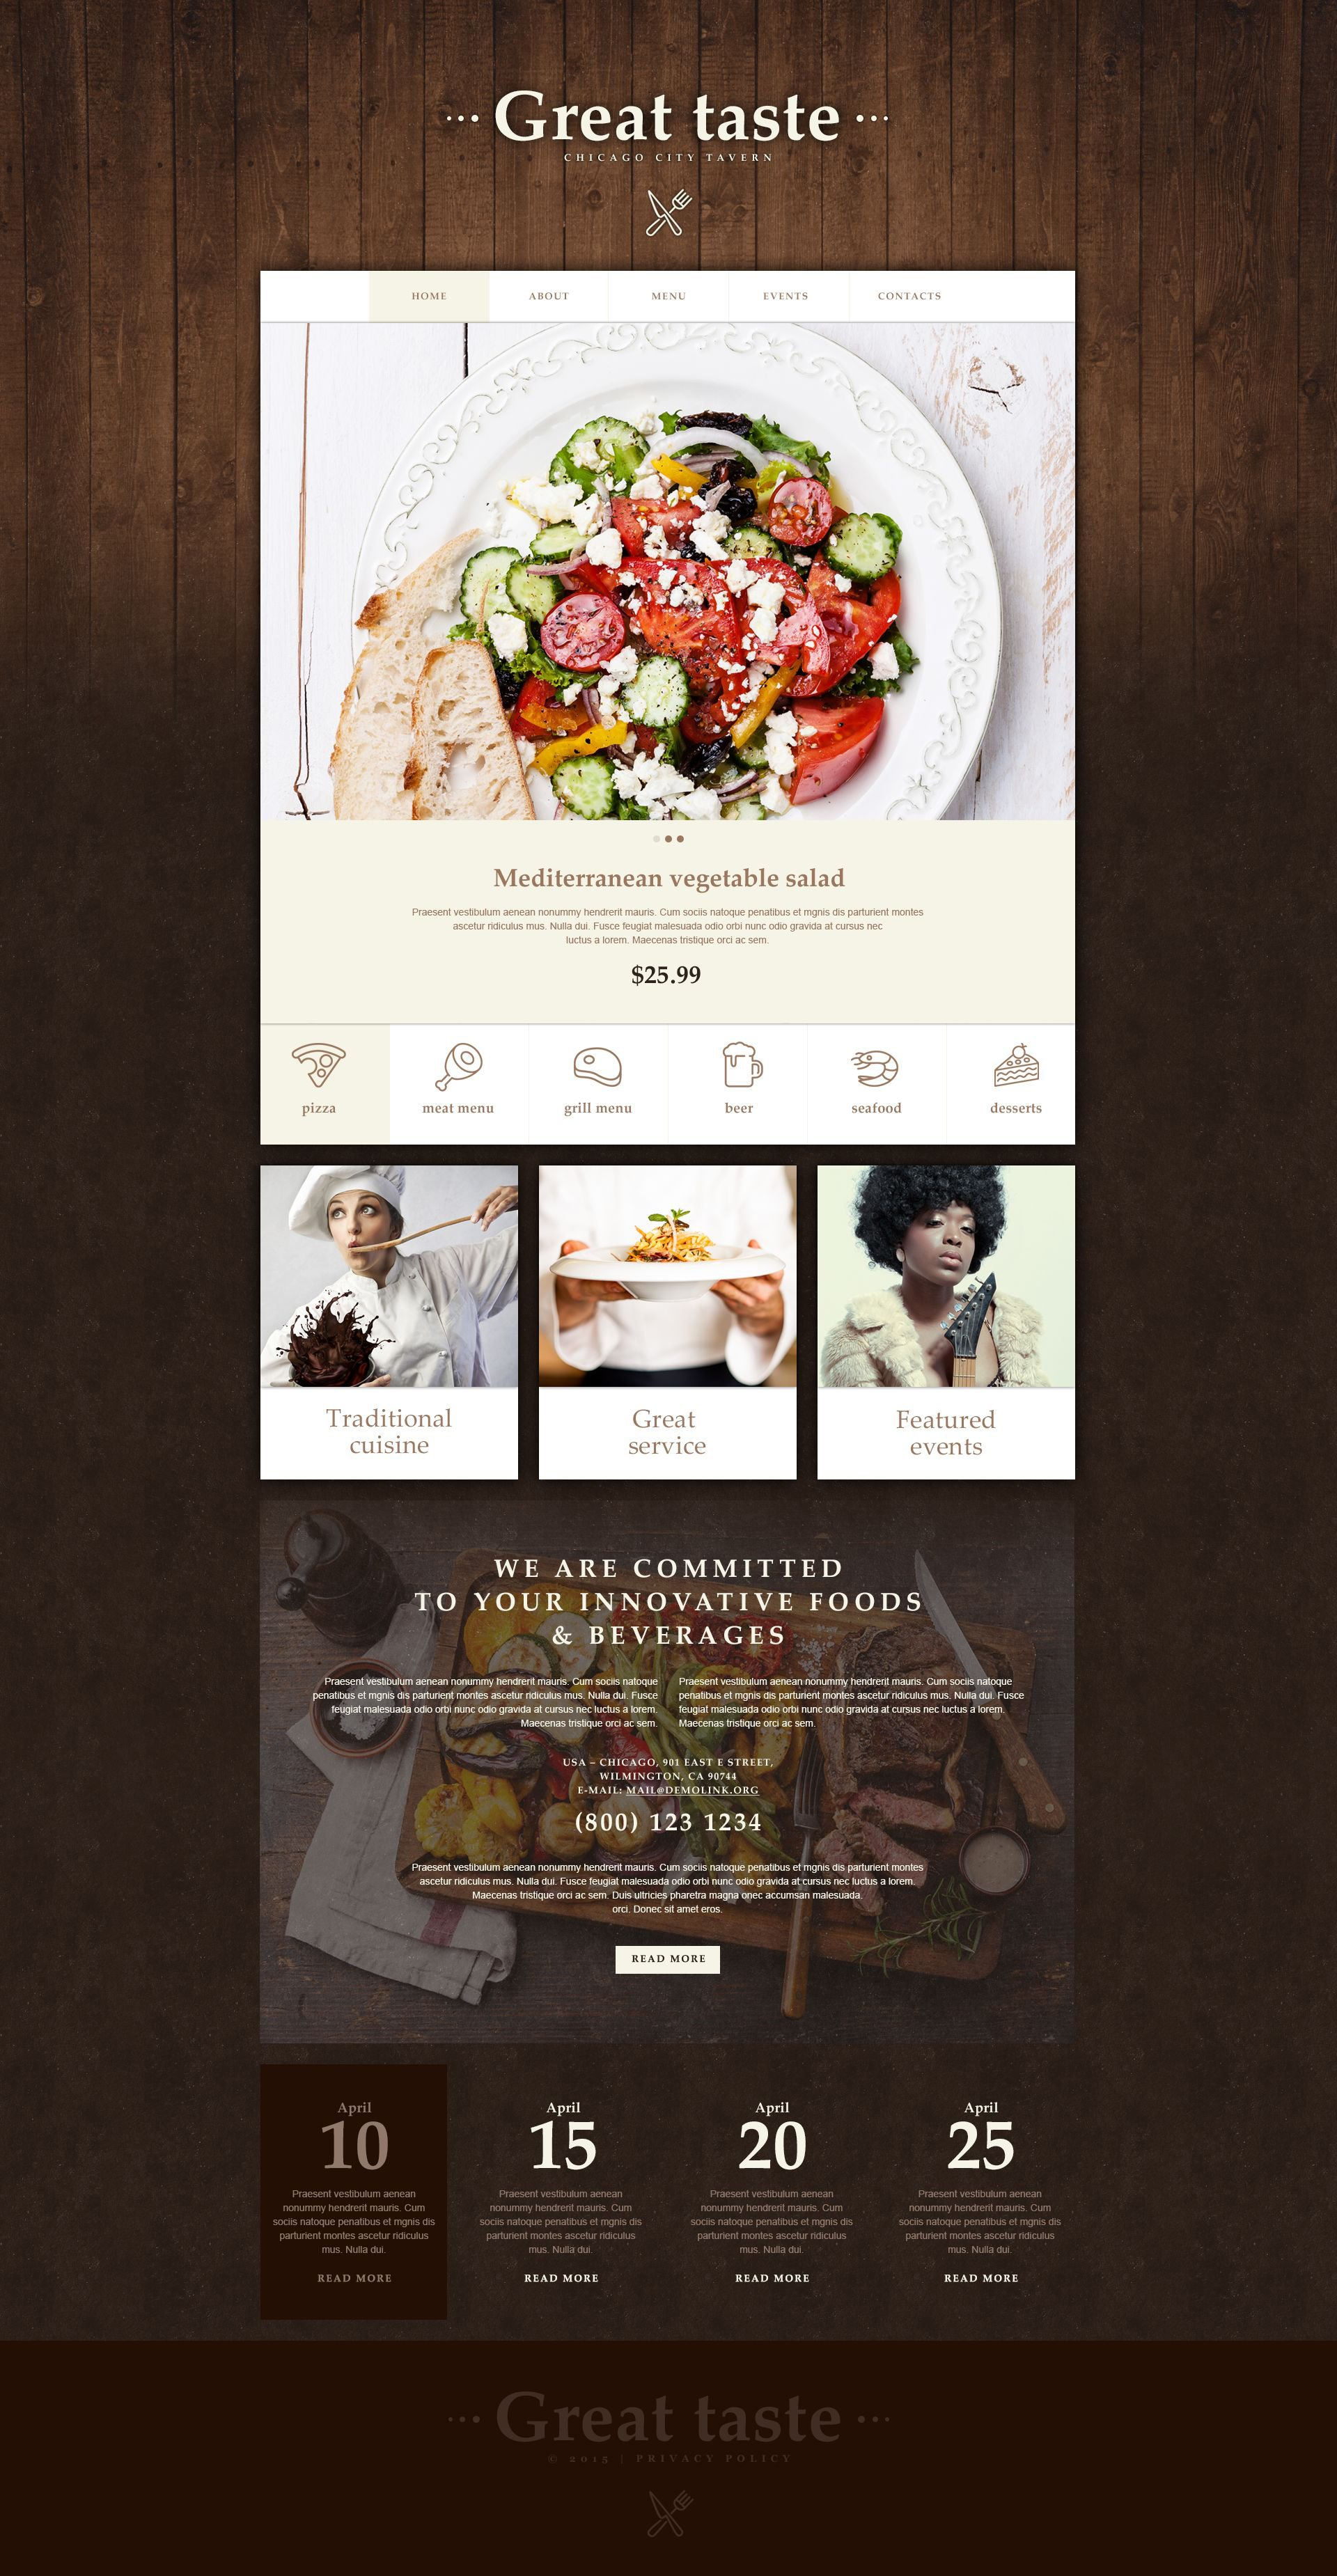 The Tavern Restaurant Muse Templates Design 53925, one of the best Muse templates of its kind (cafe and restaurant, most popular), also known as tavern restaurant Muse template, cafe Muse template, food Muse template, meal Muse template, cuisine Muse template, drink Muse template, menu Muse template, waiters Muse template, dish Muse template, wine Muse template, taste Muse template, tasty Muse template, flavor Muse template, reservation Muse template, specials Muse template, recipe Muse template, launch Muse template, dinner Muse template, testimonials Muse template, offers Muse template, kitchen Muse template, cookbook Muse template, vegetarian Muse template, cocktail Muse template, beverage Muse template, specials Muse template, gifts Muse template, bonuses Muse template, discount Muse template, patrons Muse template, reservation and related with tavern restaurant, cafe, food, meal, cuisine, drink, menu, waiters, dish, wine, taste, tasty, flavor, reservation, specials, recipe, launch, dinner, testimonials, offers, kitchen, cookbook, vegetarian, cocktail, beverage, specials, gifts, bonuses, discount, patrons, reservation, etc.